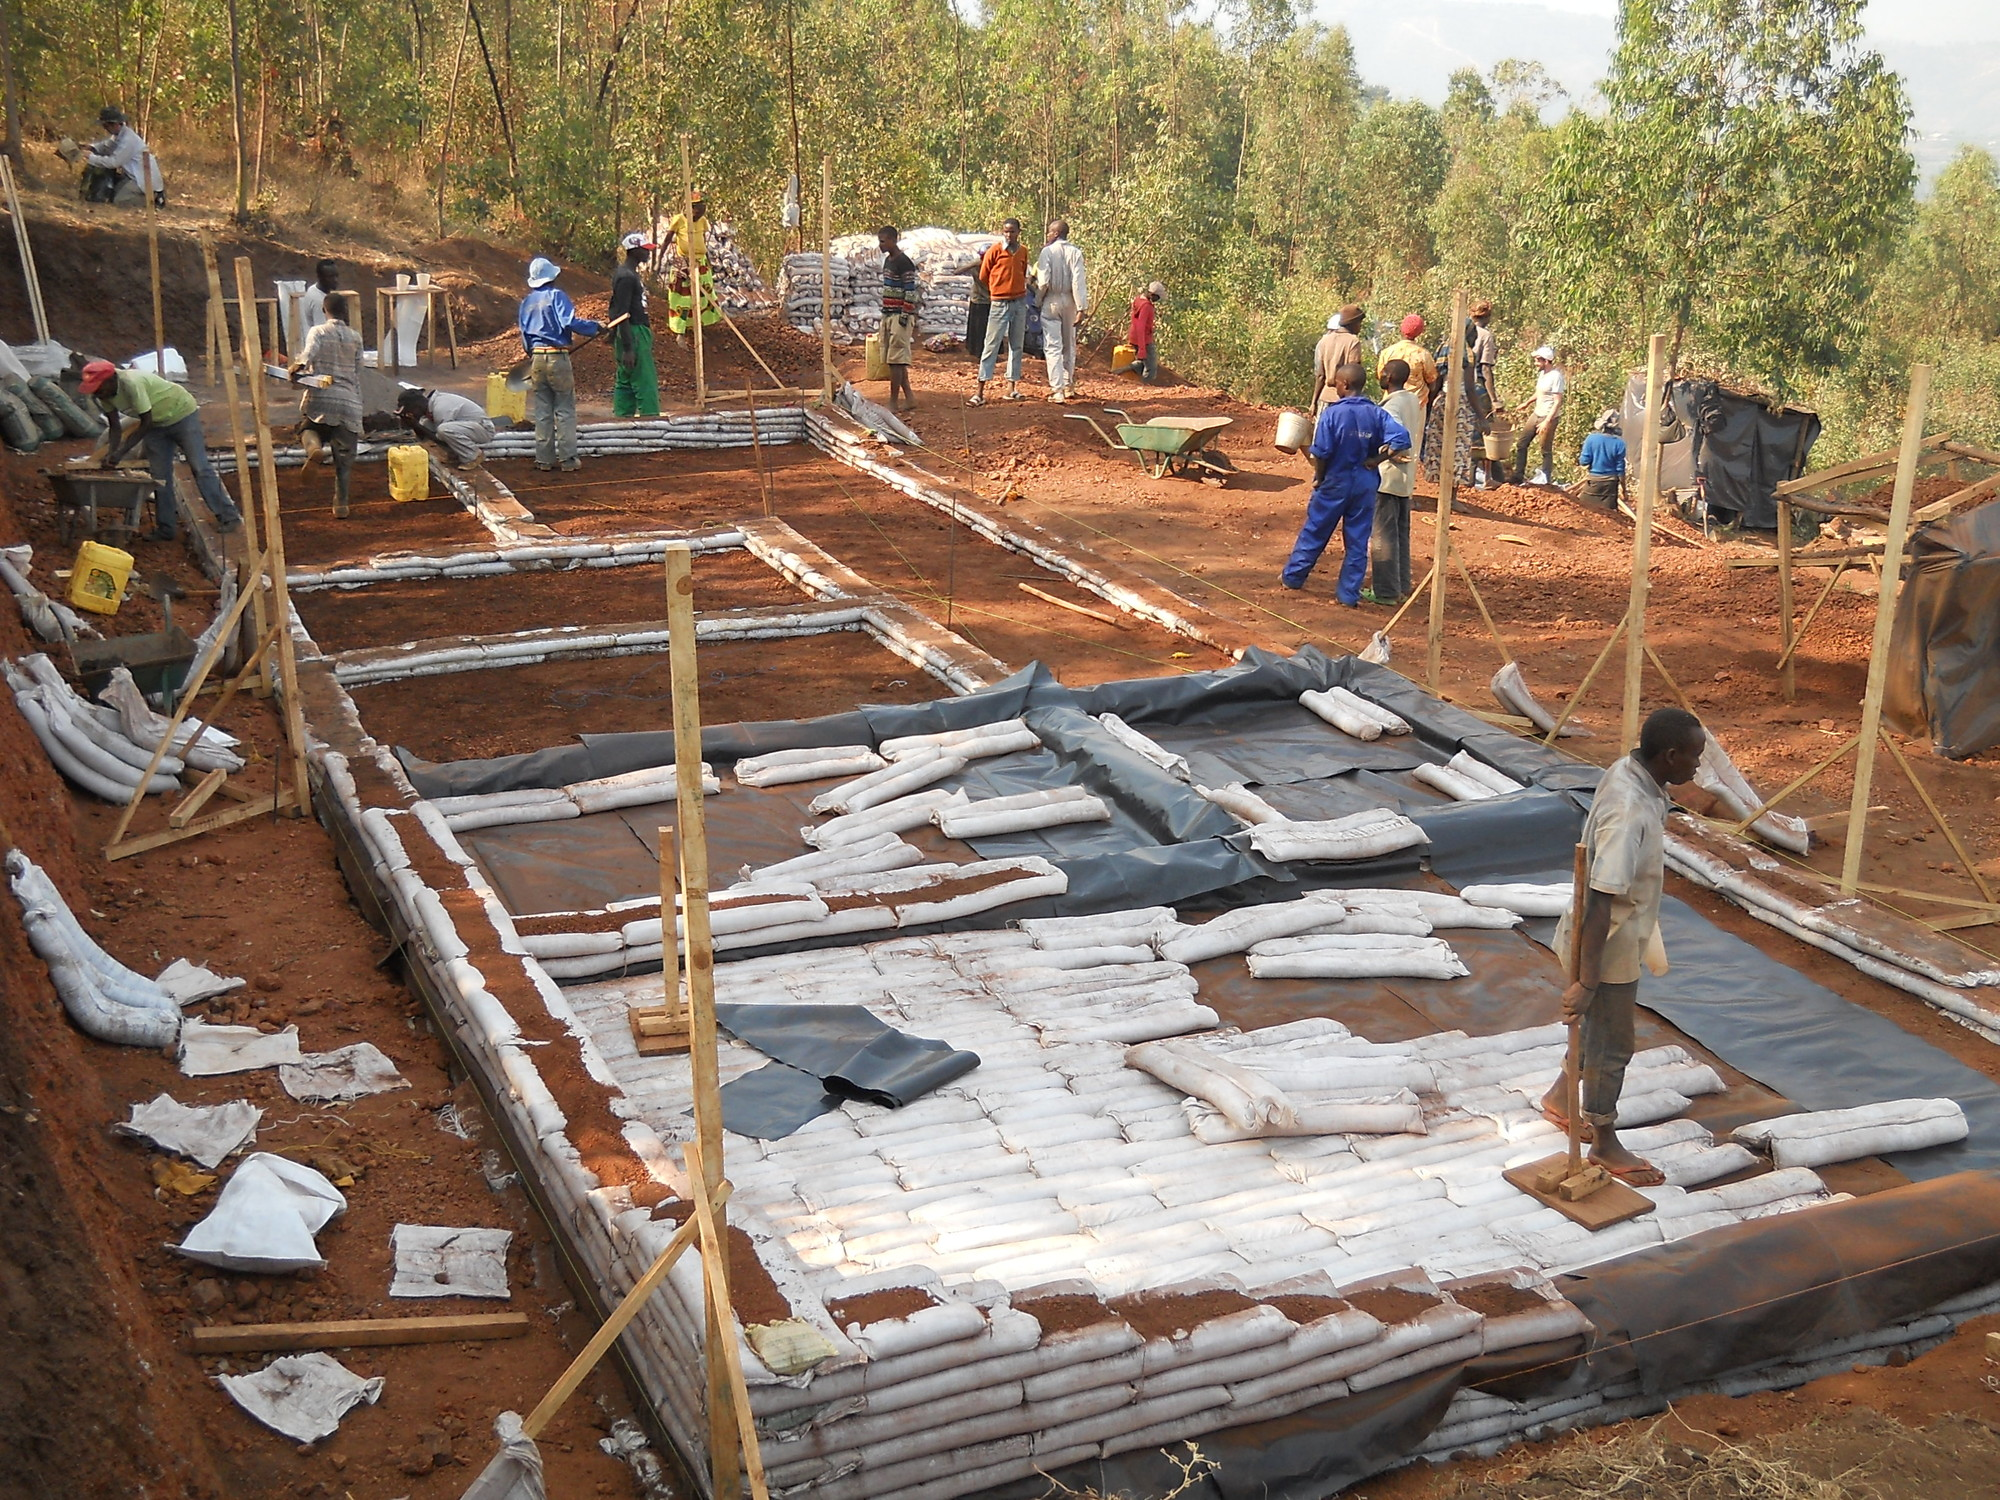 This is the first earthbag construction in Rwanda. While all earthbags were filled with soil from the site, one part cement to nine parts soil was mixed to make special foundation bags. Image © Riaan Hough